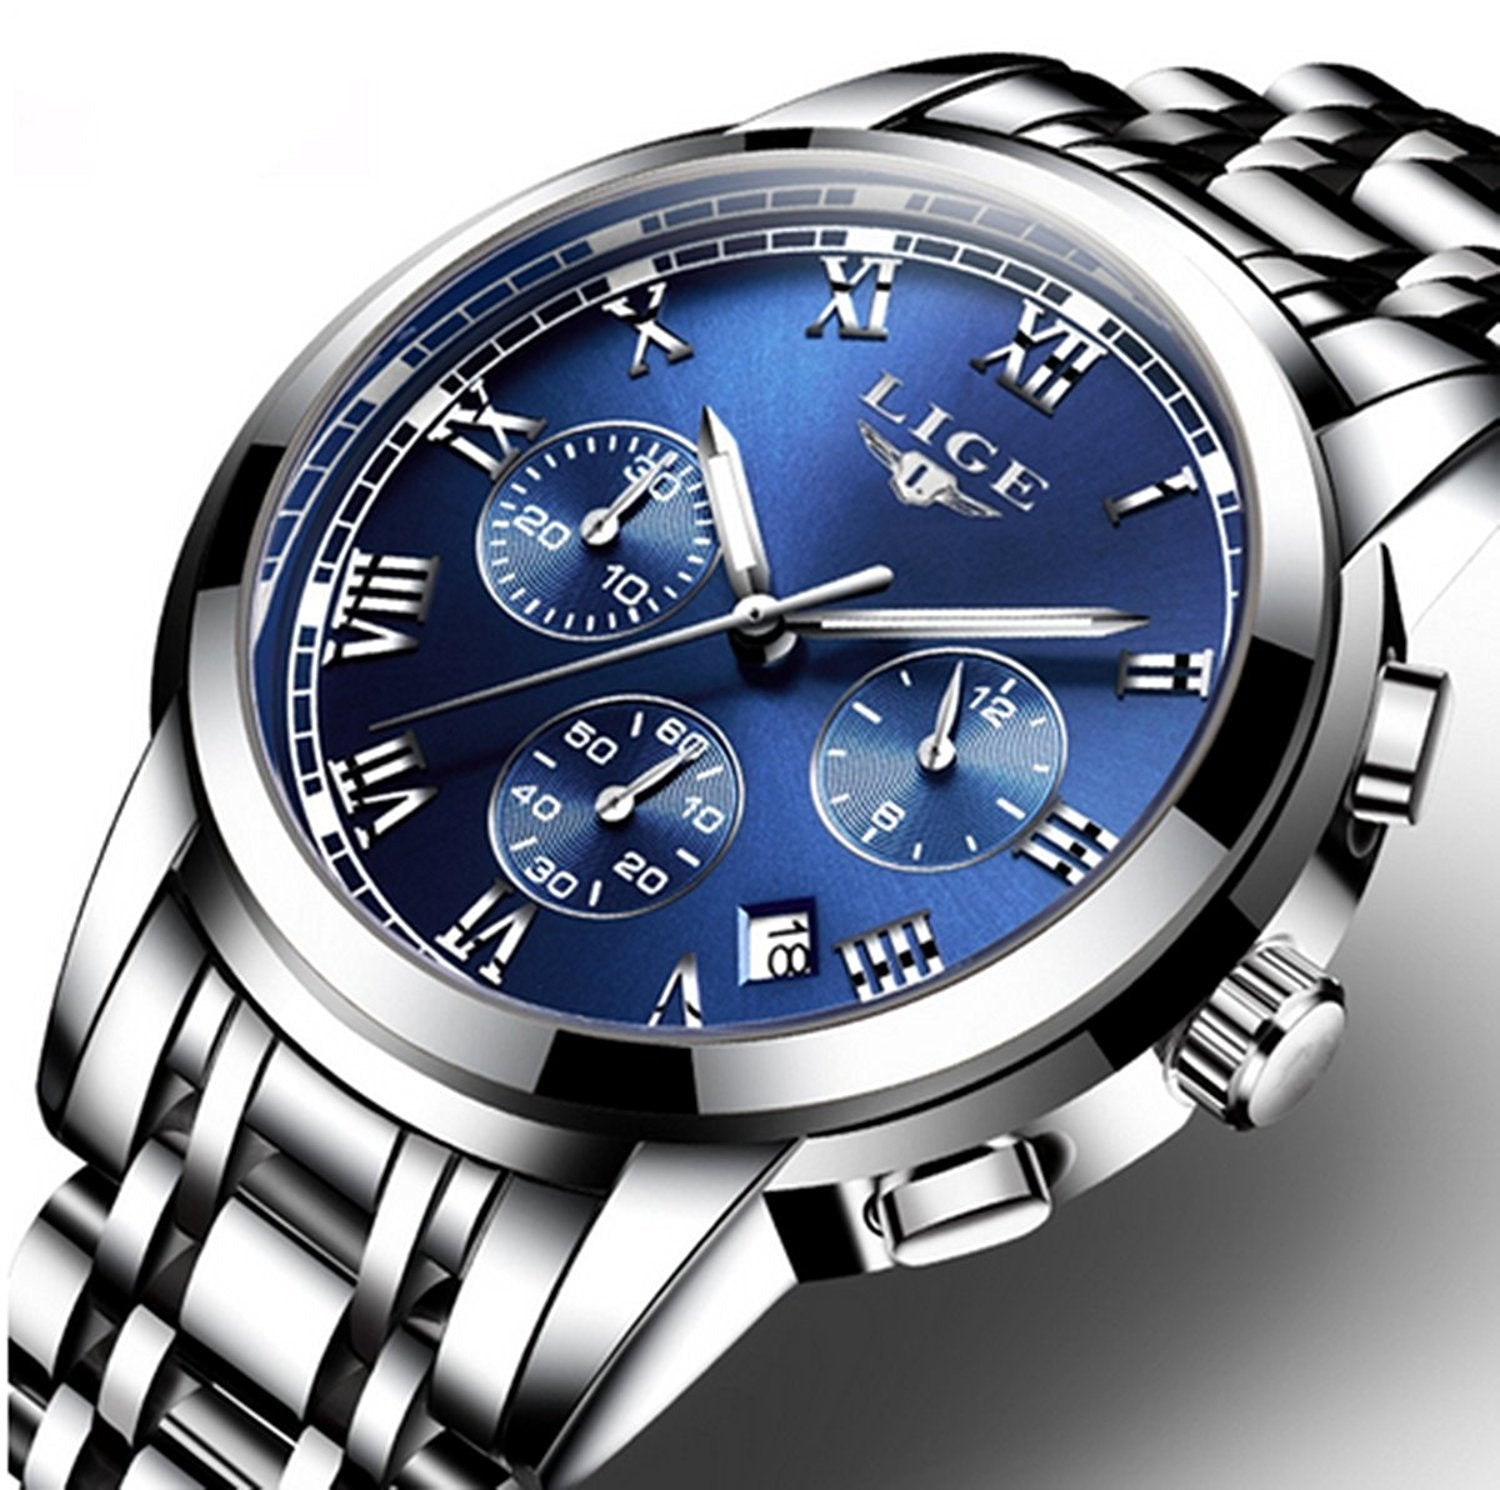 Watch,Mens Watches,Mens Luxury Fashion Stainless Steel Waterproof Chronograph Quartz Analog Wrist Watch